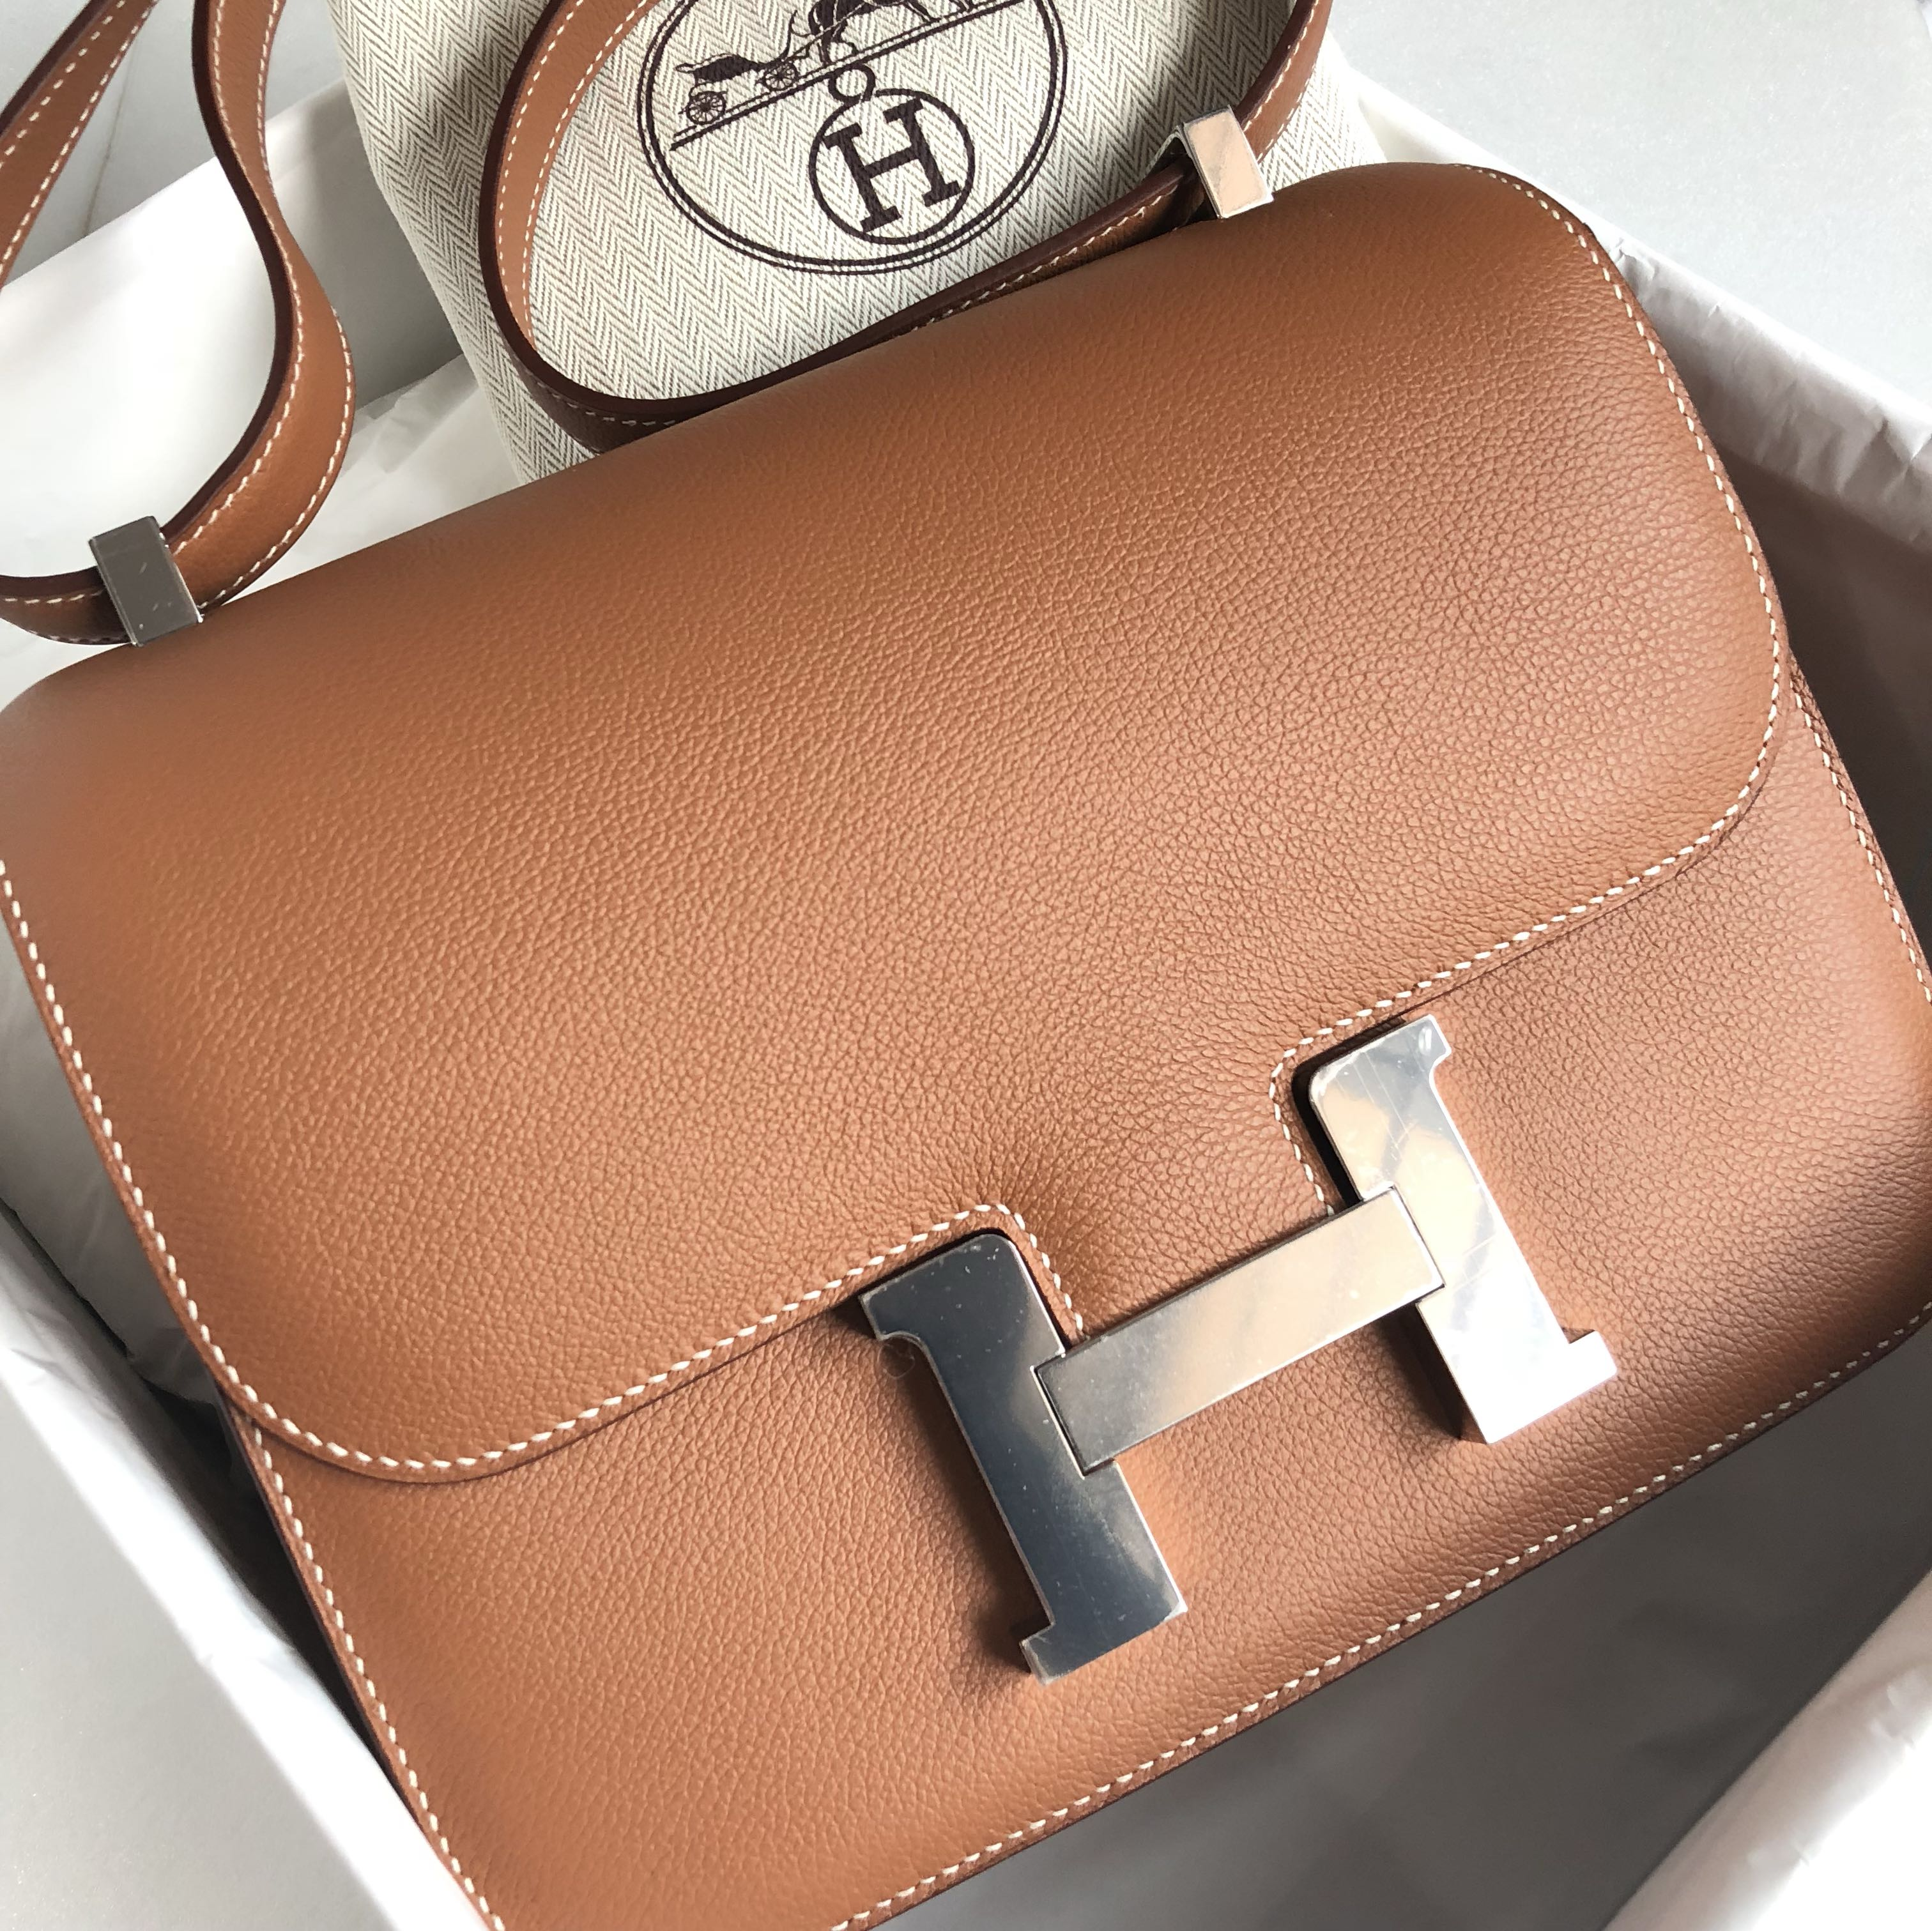 dbadab39c46a Hermes - Gold Sac Constance 24 in Veau Evercolour with PHW